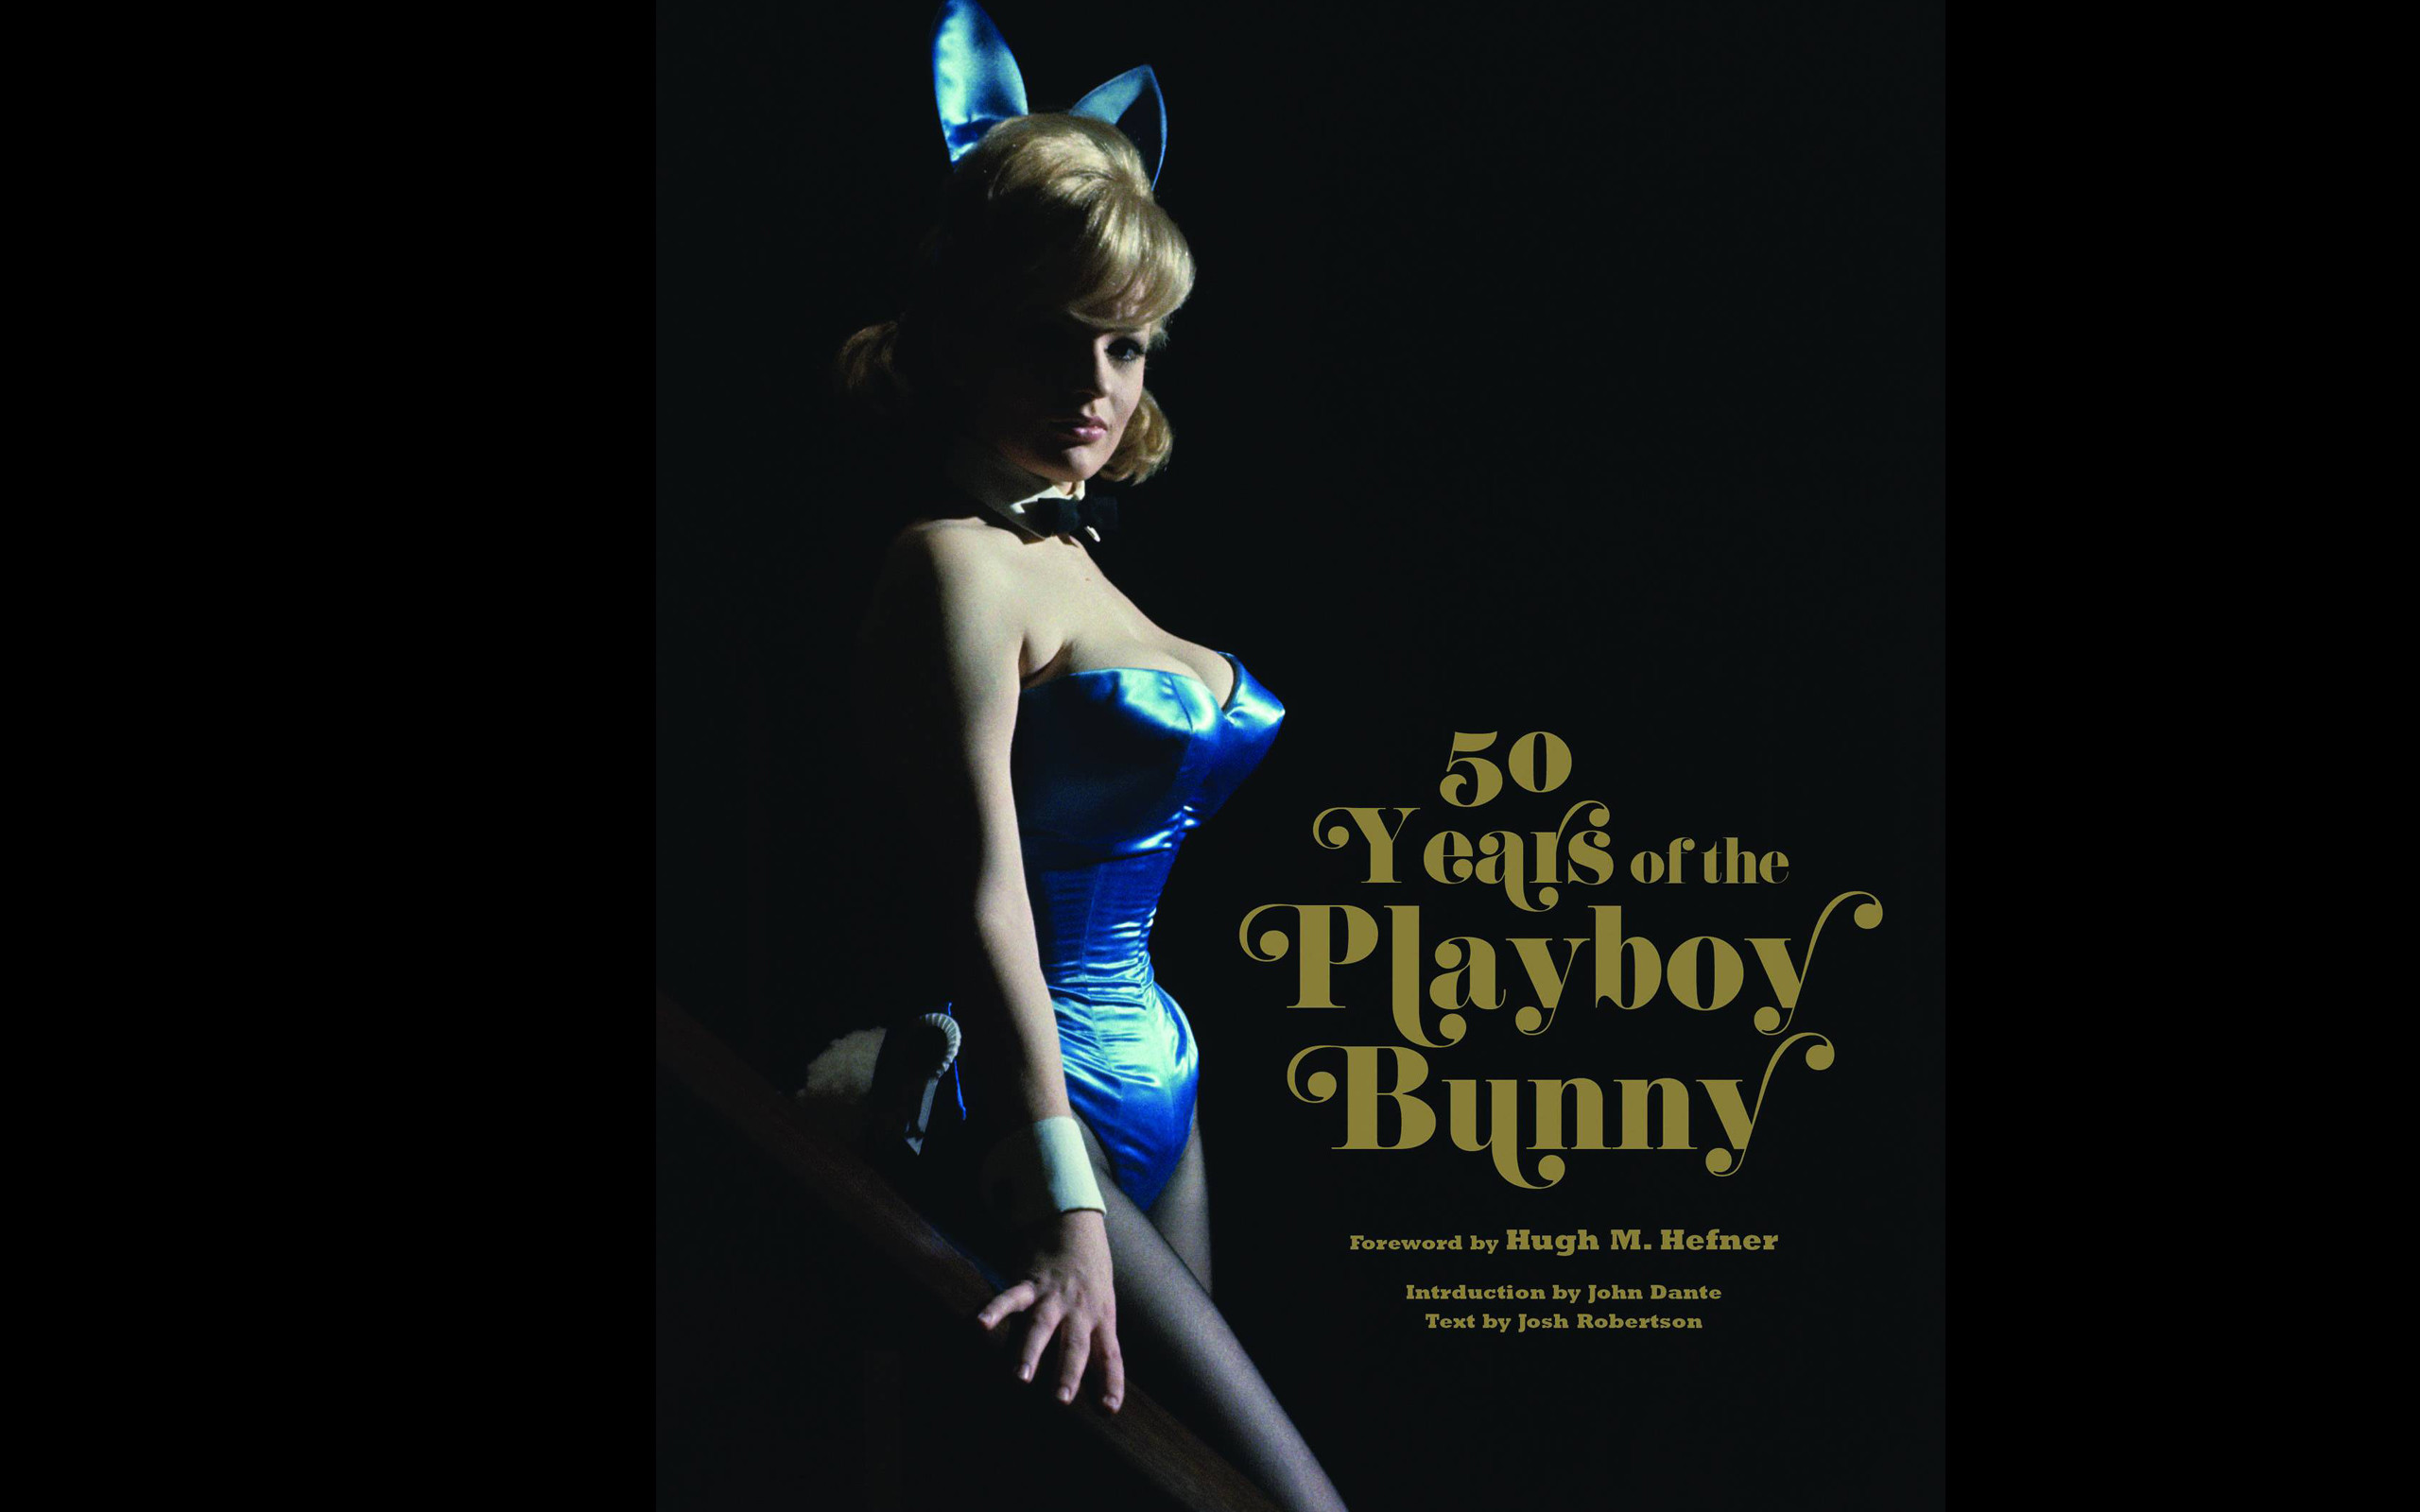 Playboy backgrounds 64 images 1920x1080 pic new posts wallpaper hd playboy logo voltagebd Choice Image